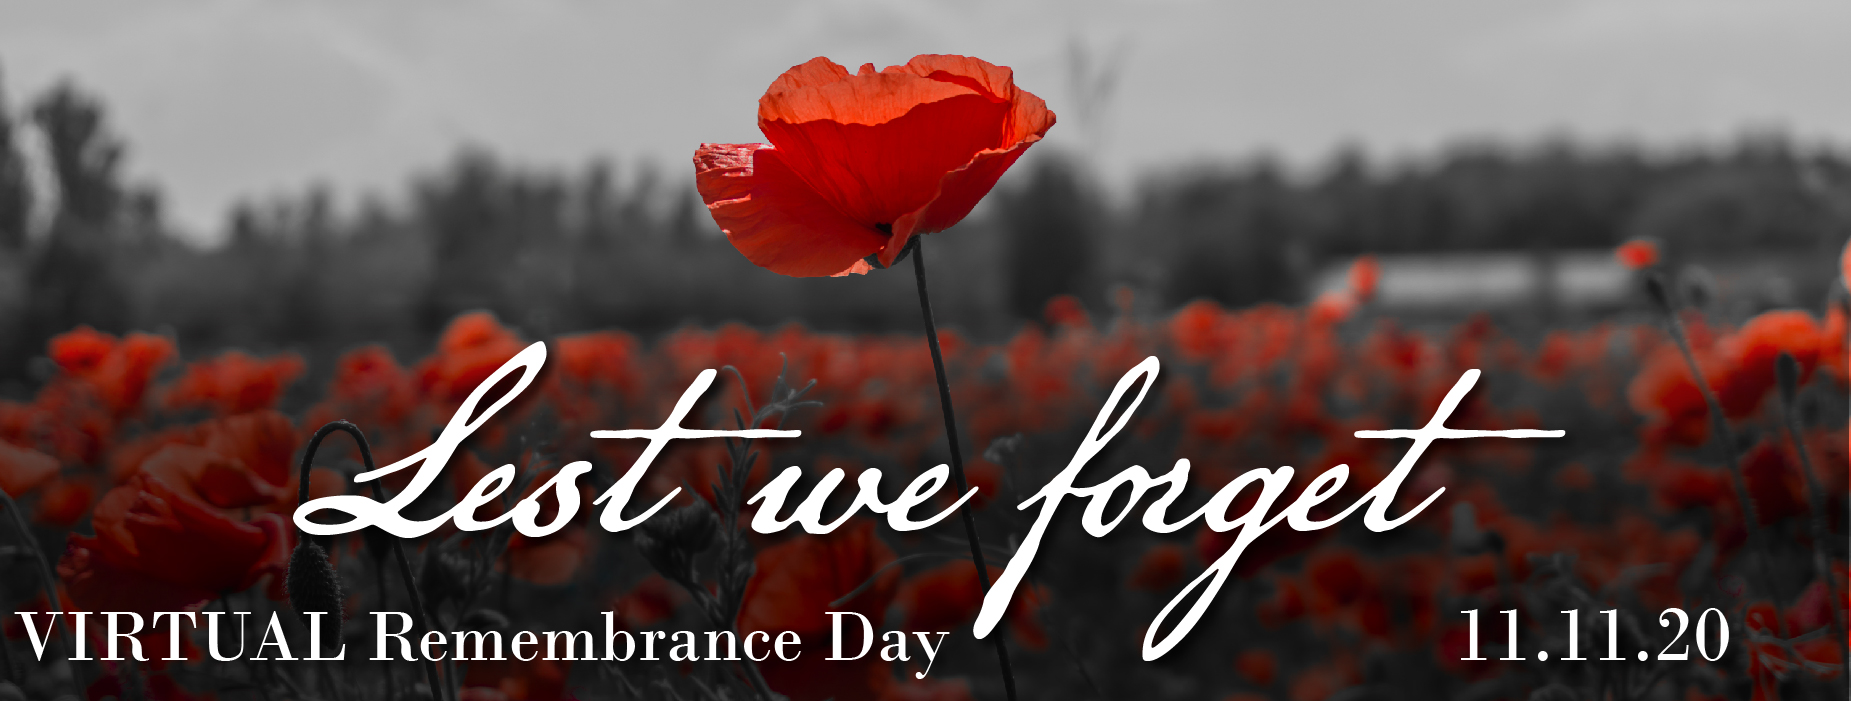 Poster for - VIRTUAL Remembrance Day